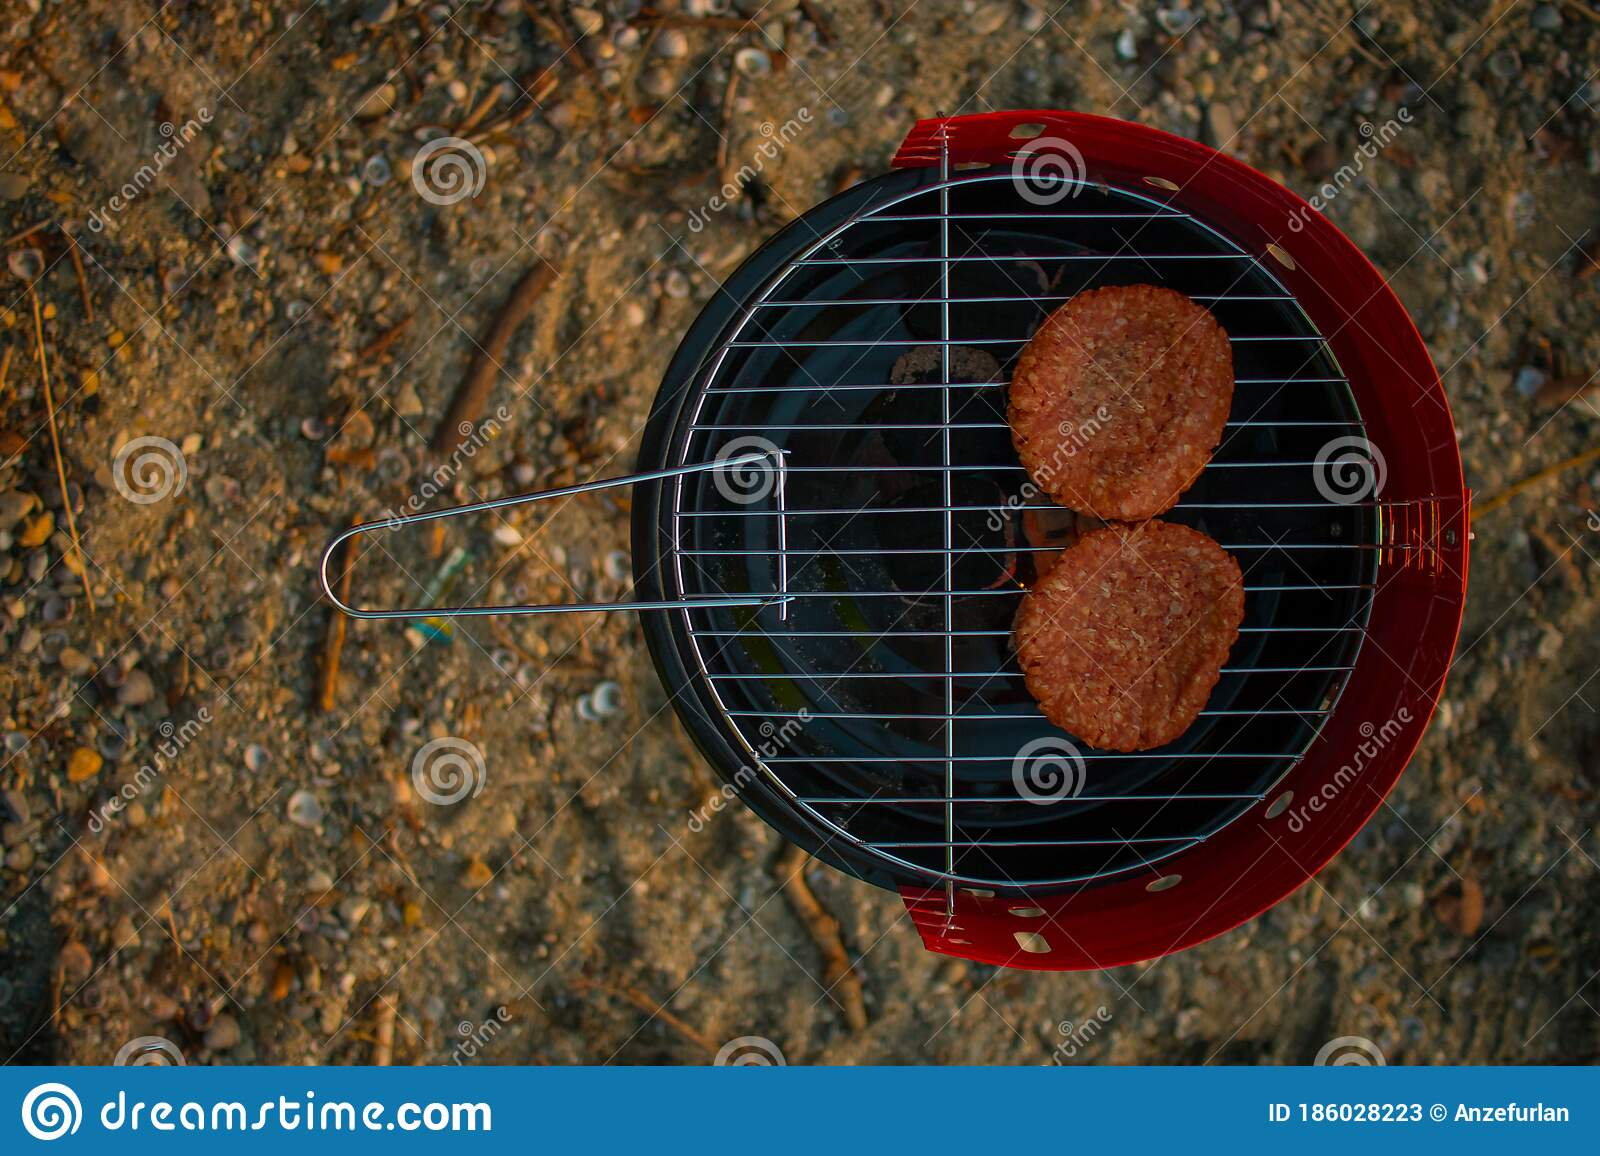 Grilling Burgers On A Small Metal Portable Charcoal Grill On The Shores Of Lac Leman In Switzerland During Early Winter Evening Stock Image Image Of Beautiful Grilling 186028223